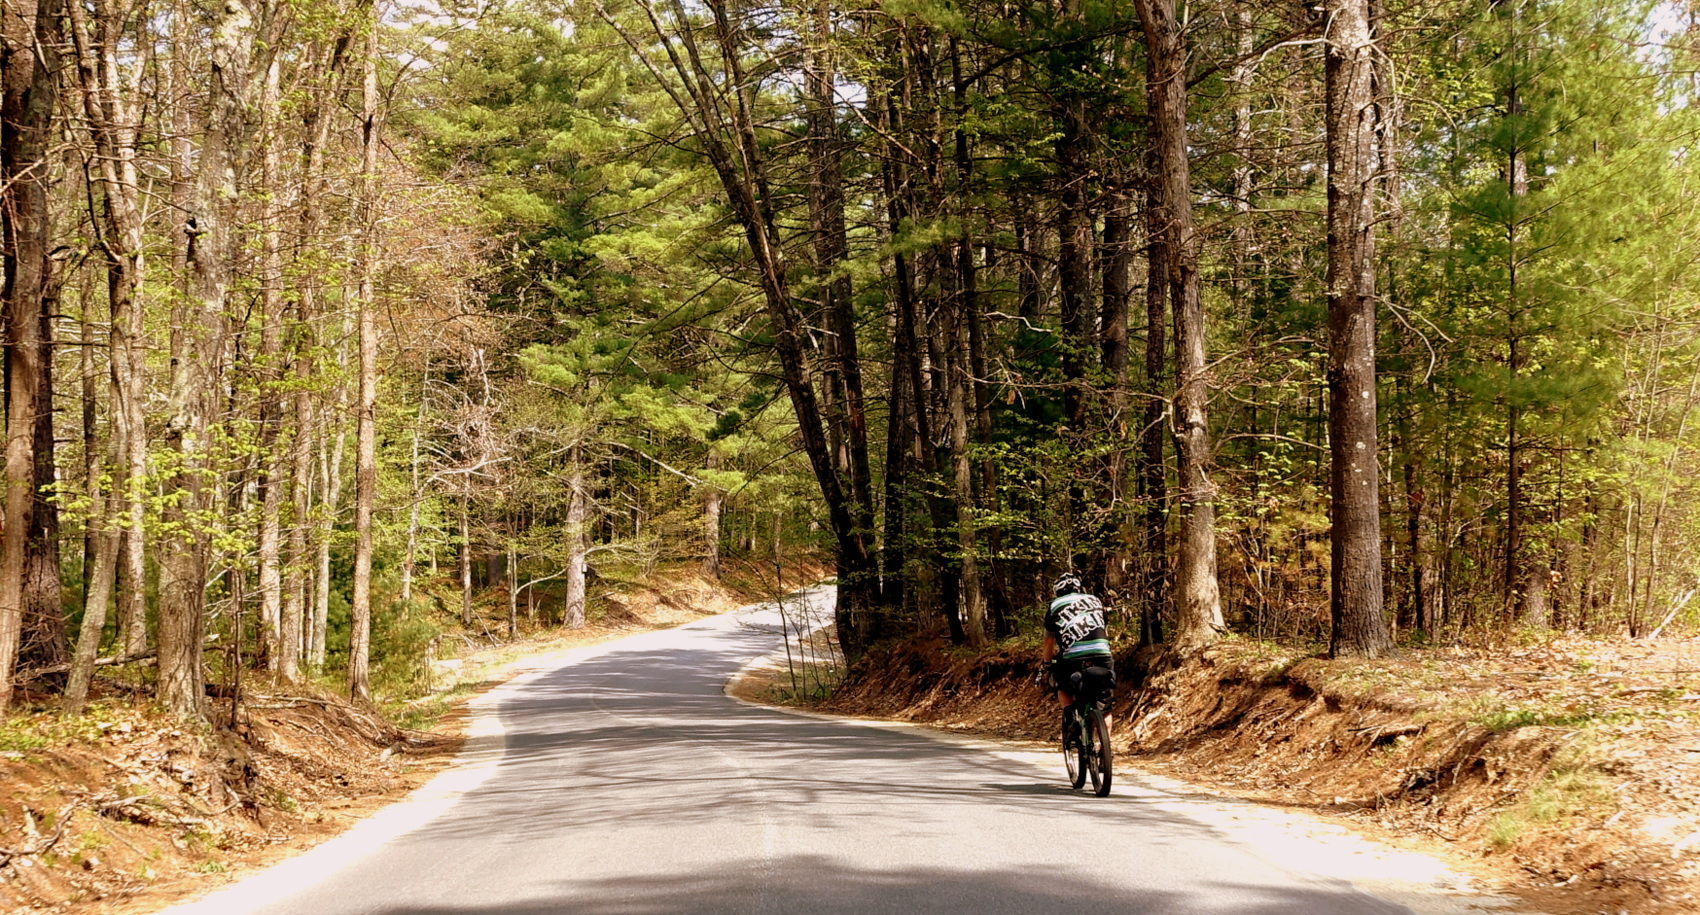 The Forest Road :   Daniel Mutz  had the car-less roads, and remote trails, to himself for many miles.  He did the Long Ride:  250-mile Bikepacking Division.